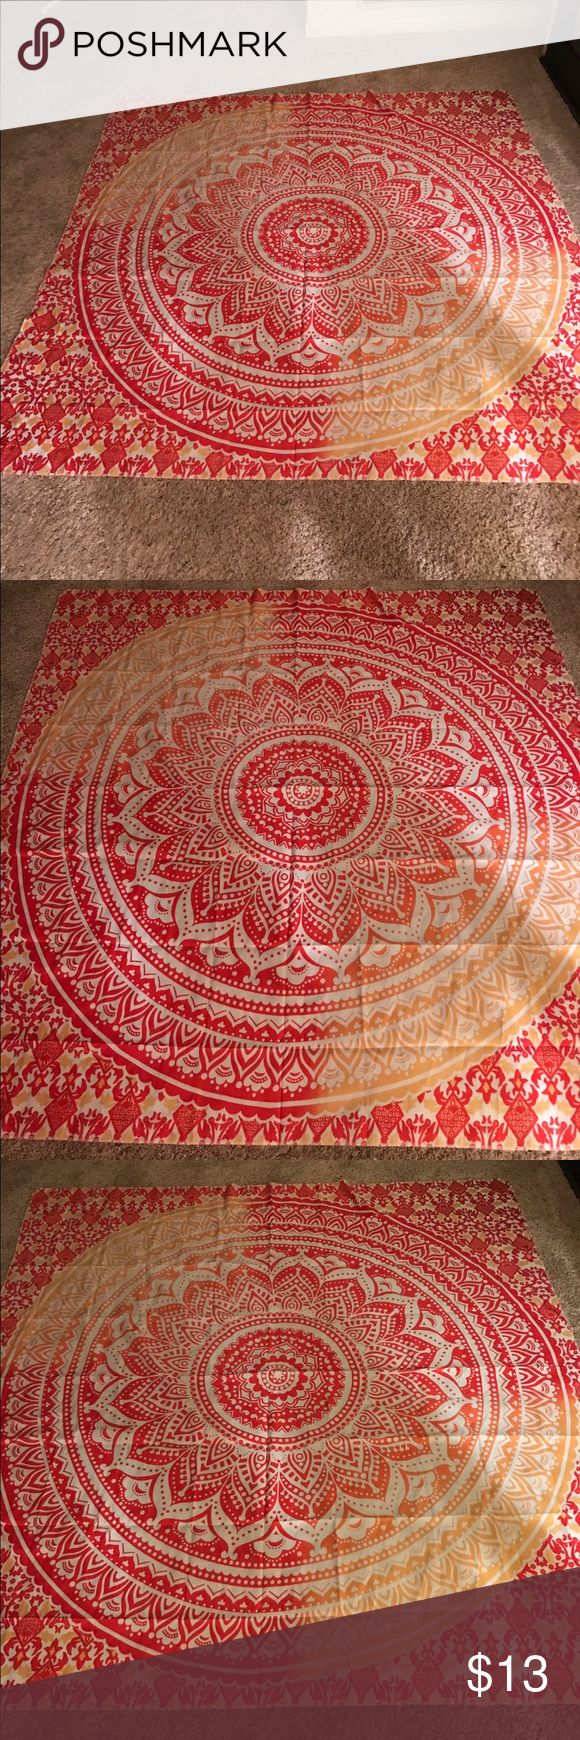 NWT Goldtop Queen Mandela Tapestry, Beach Blanket New brightly colored of pink, yellow and orange Mandela. Has many uses, can be hung as tapestry, beach blanket, yoga mats and any home decor!! Bohemian style, queen size, made by Goldtop. If you have any questions please feel free to contact me and thanks for looking!! Goldtop Other